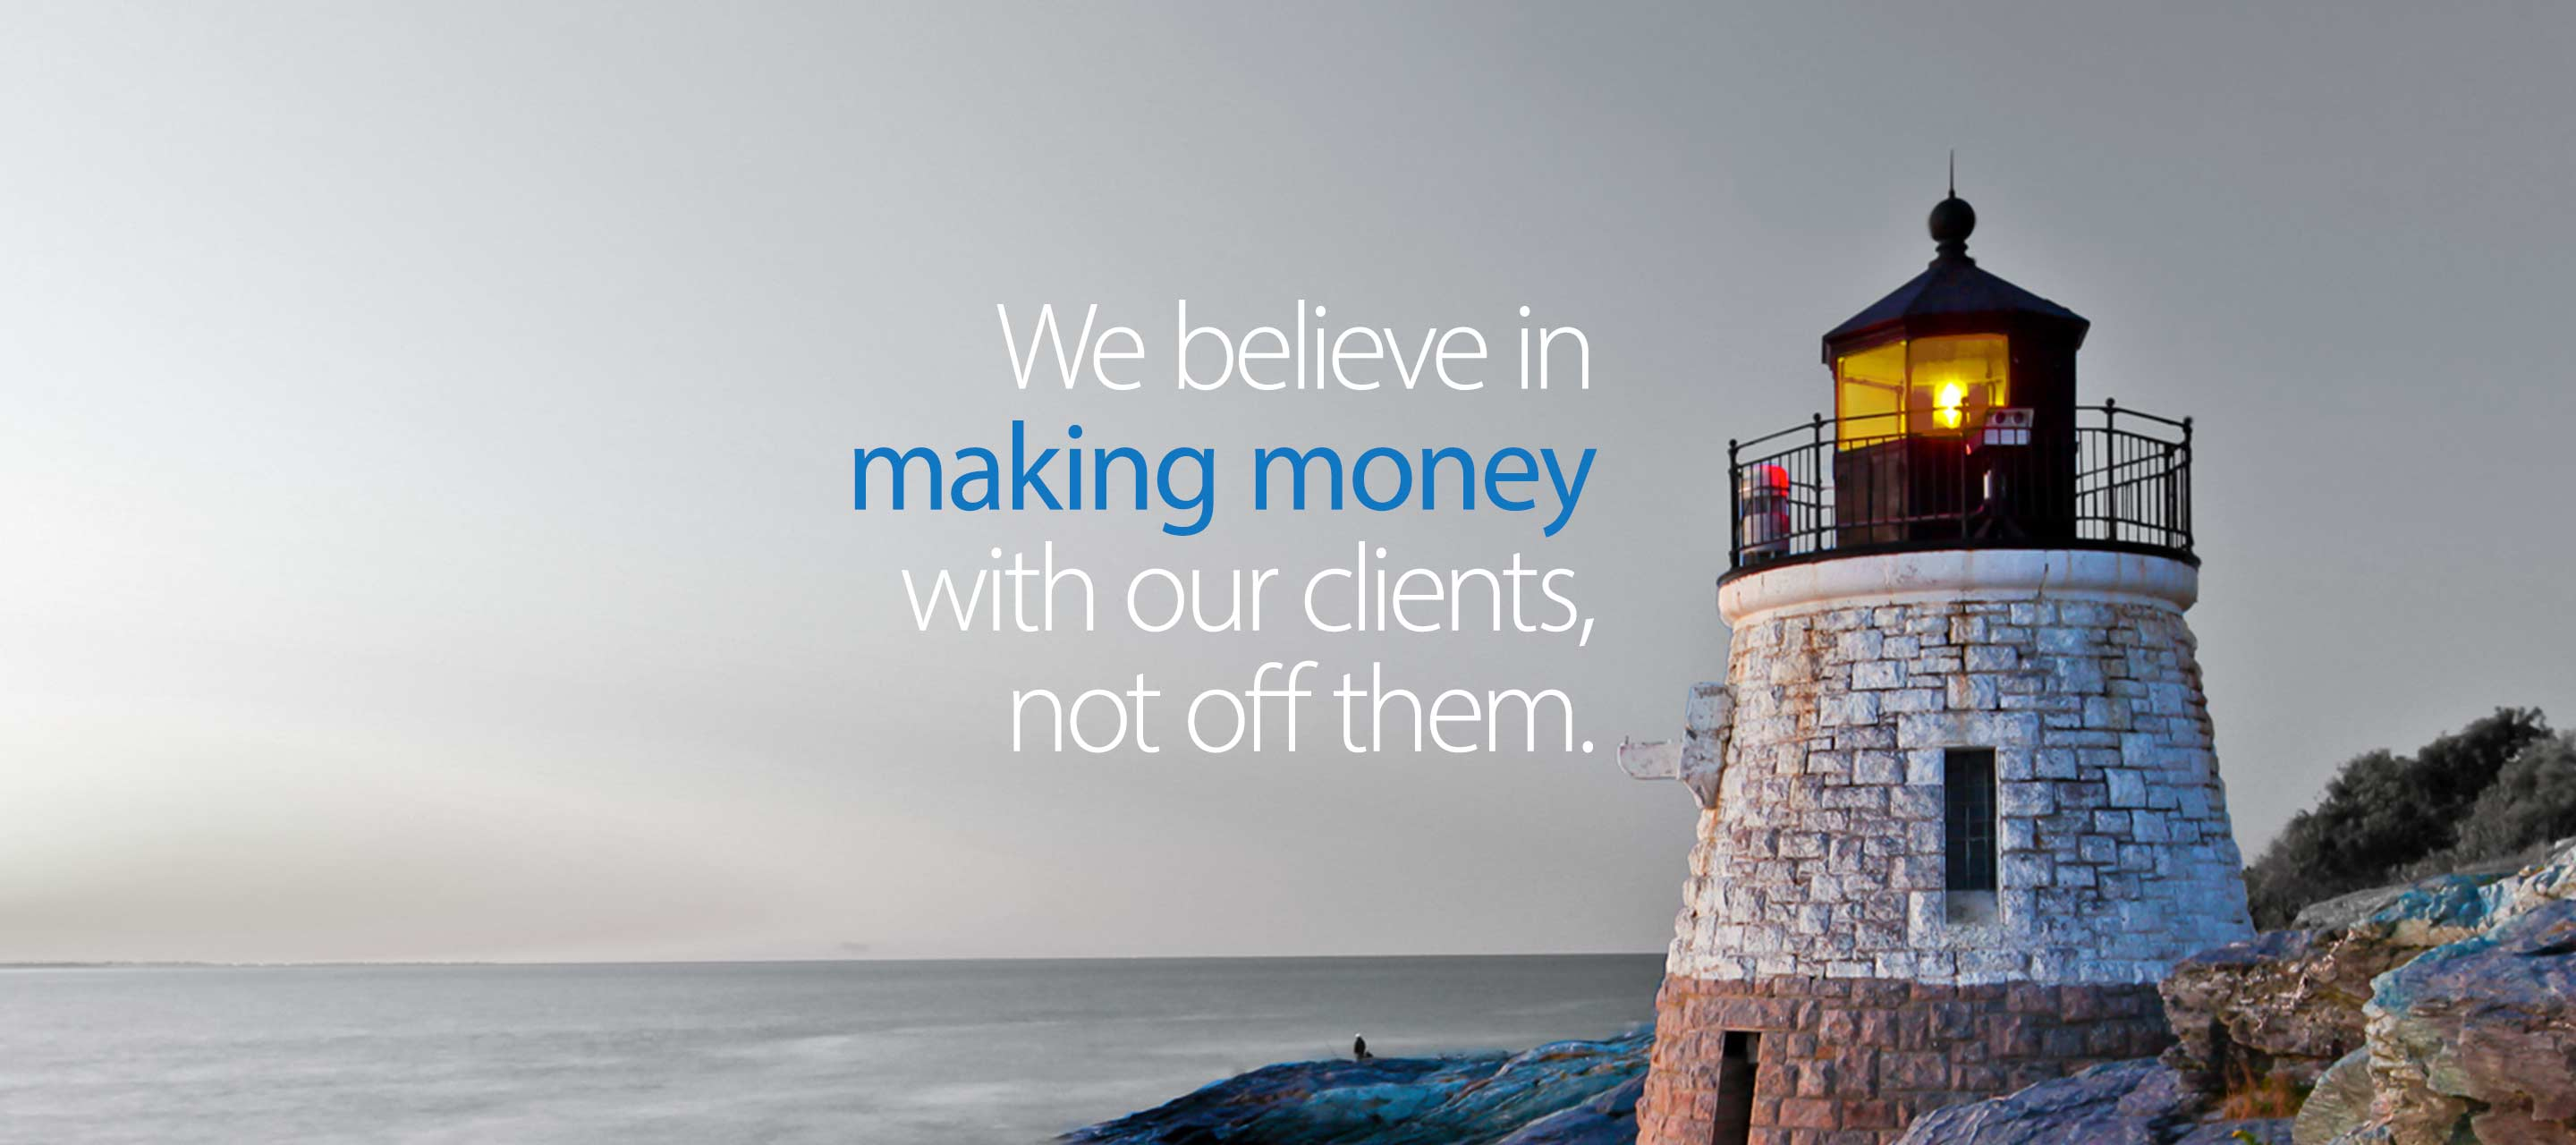 We believe in making money with our clients, not off them.